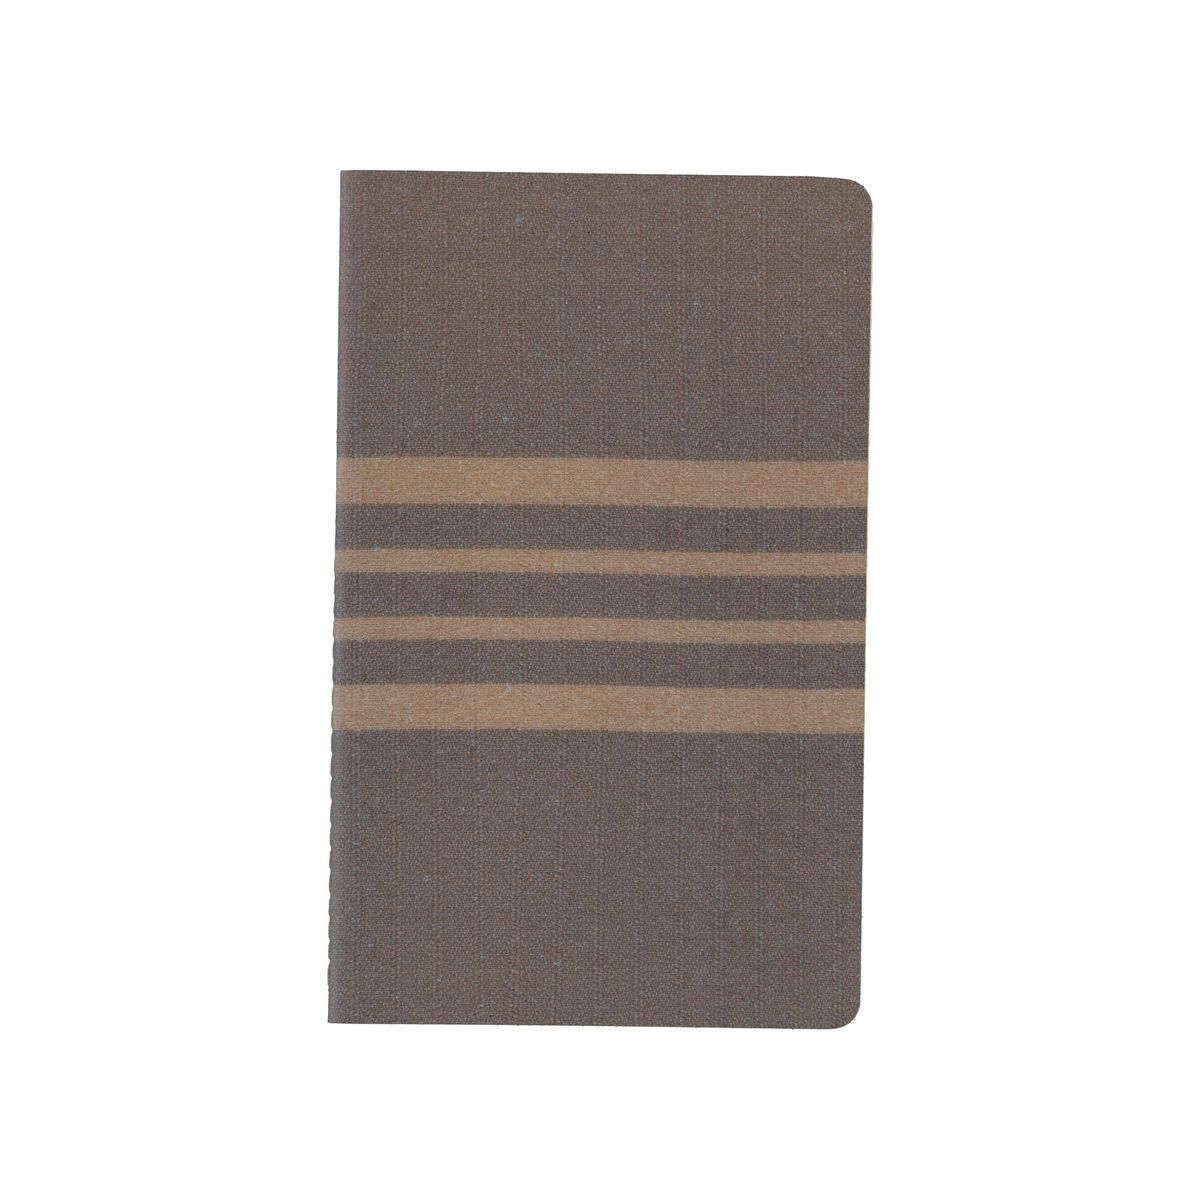 Notebook Medium / Leather - Beige